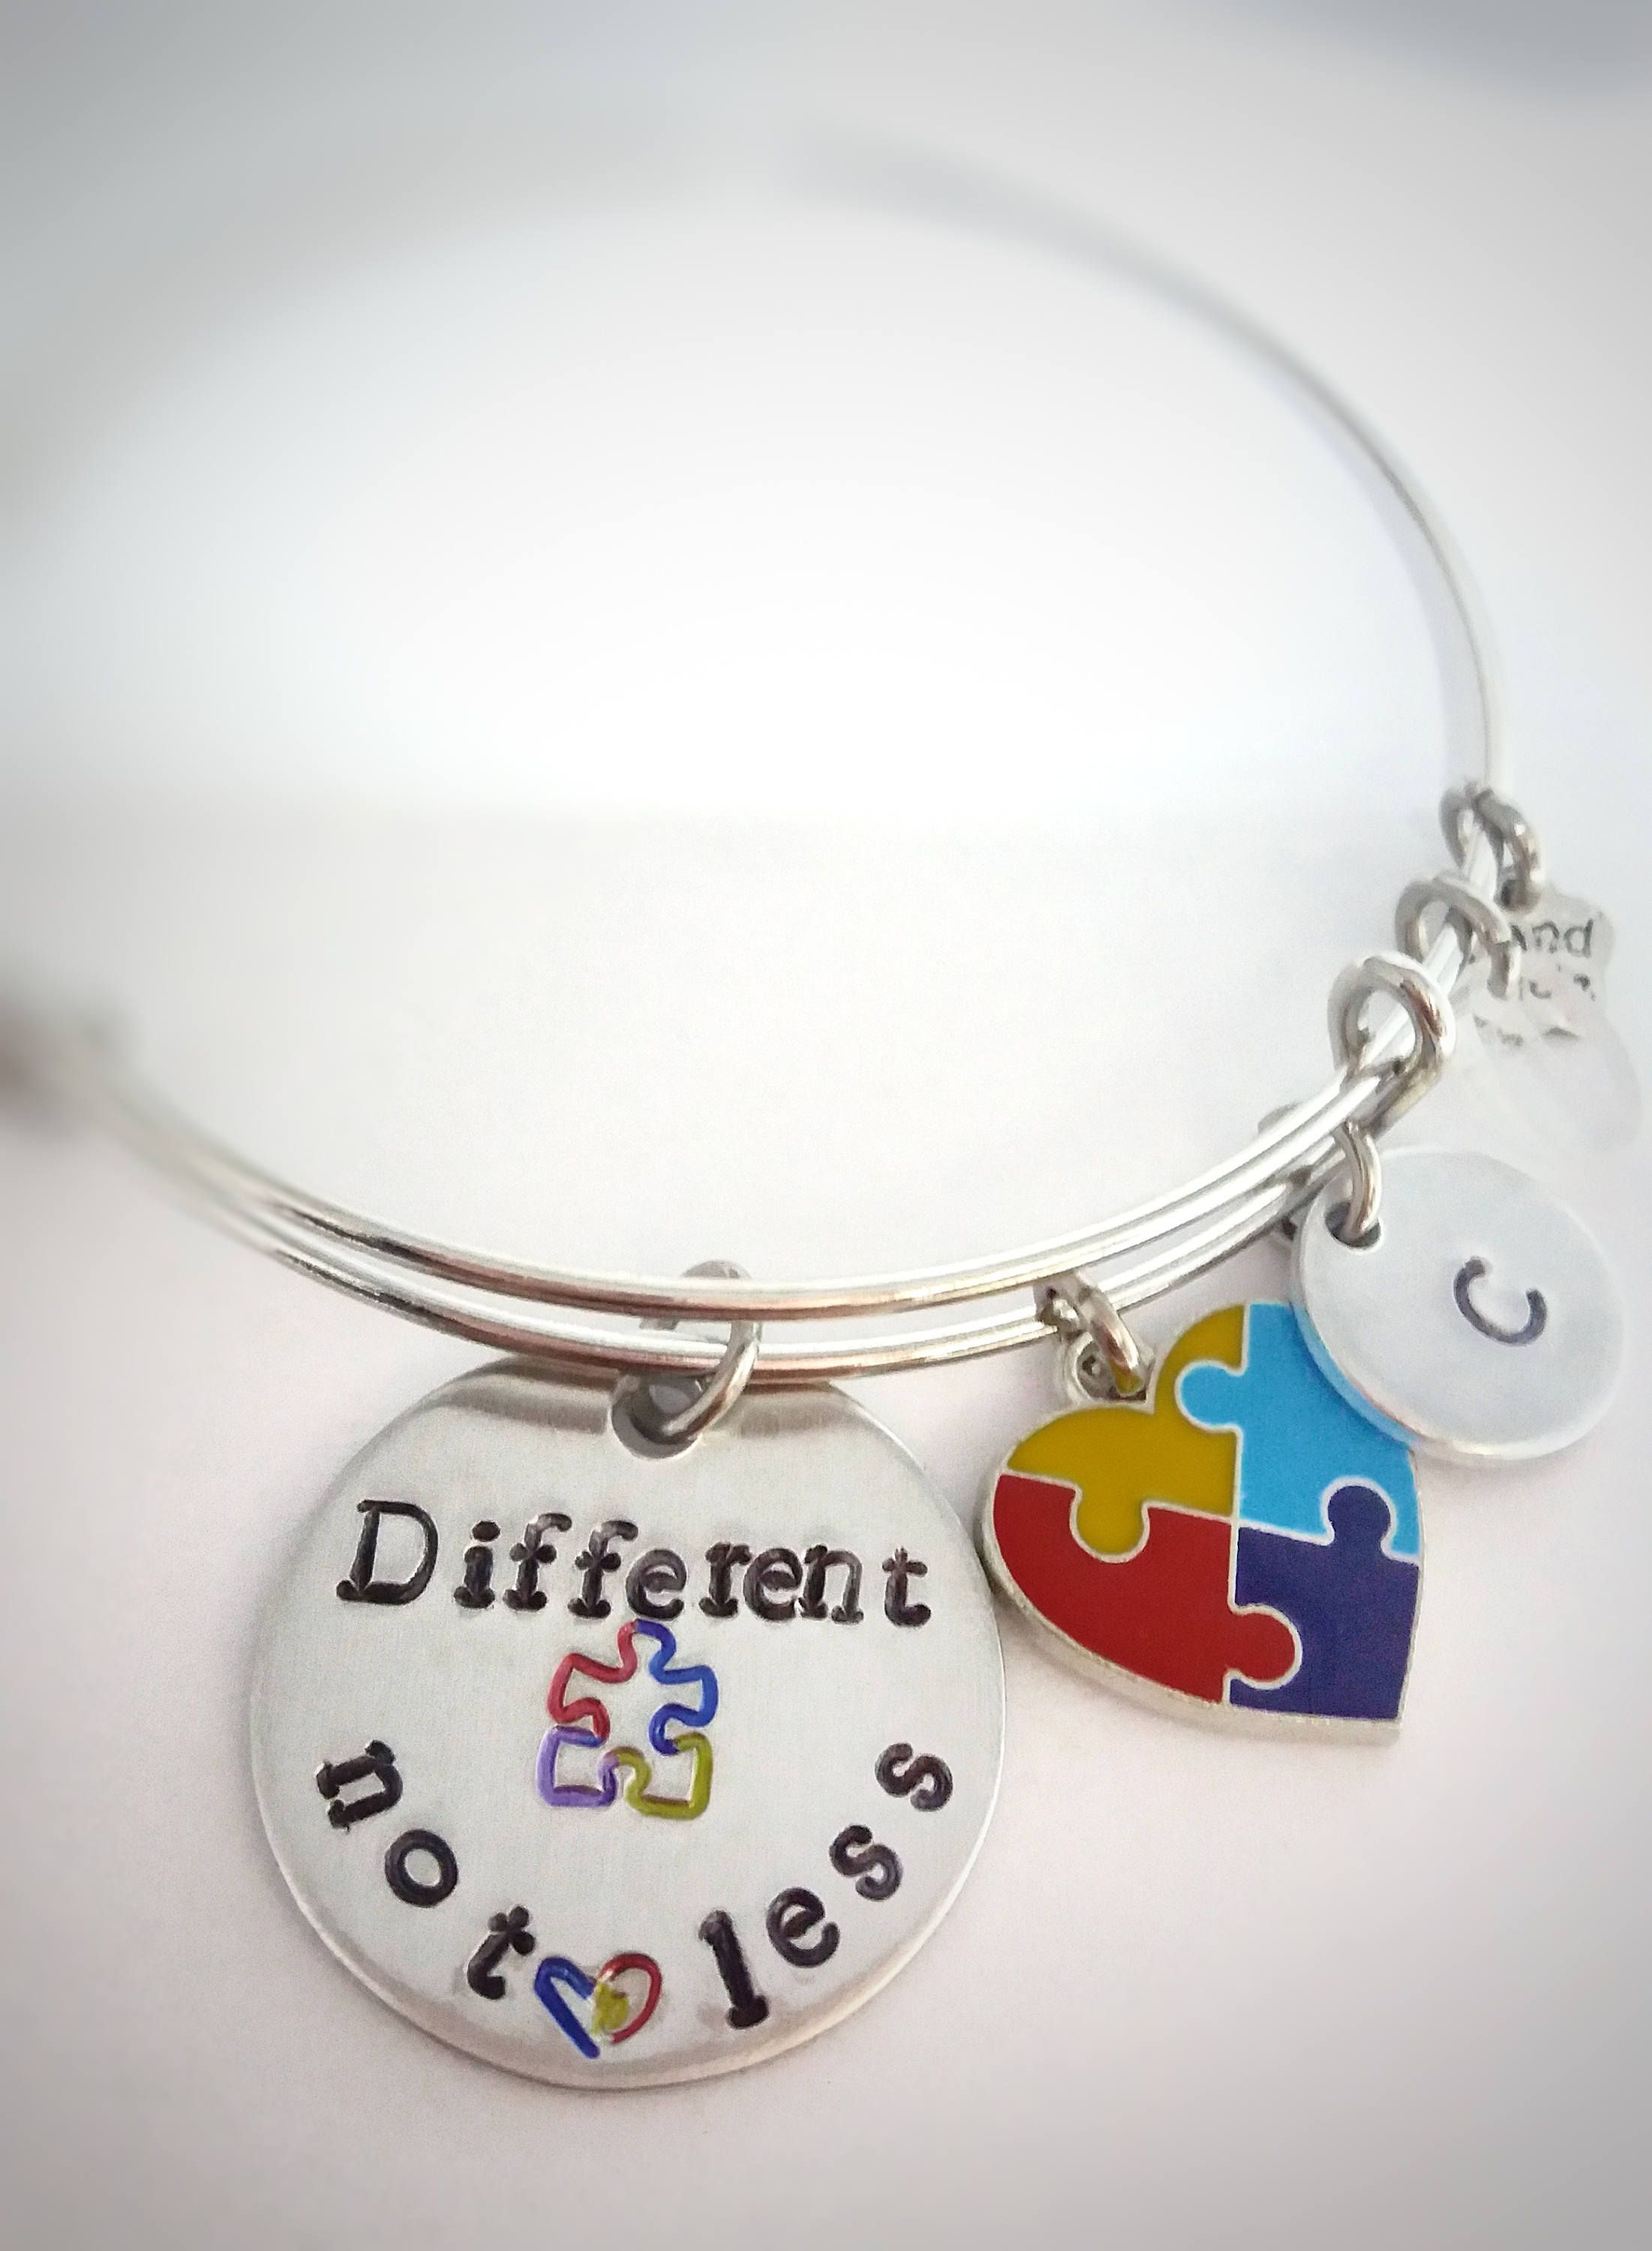 dot autsimawareness will to sell jewelry awareness autism this is in s join whitney style you fields my stella personal goal bracelet dots beauty april year me supporting blog socialjpg bracelets